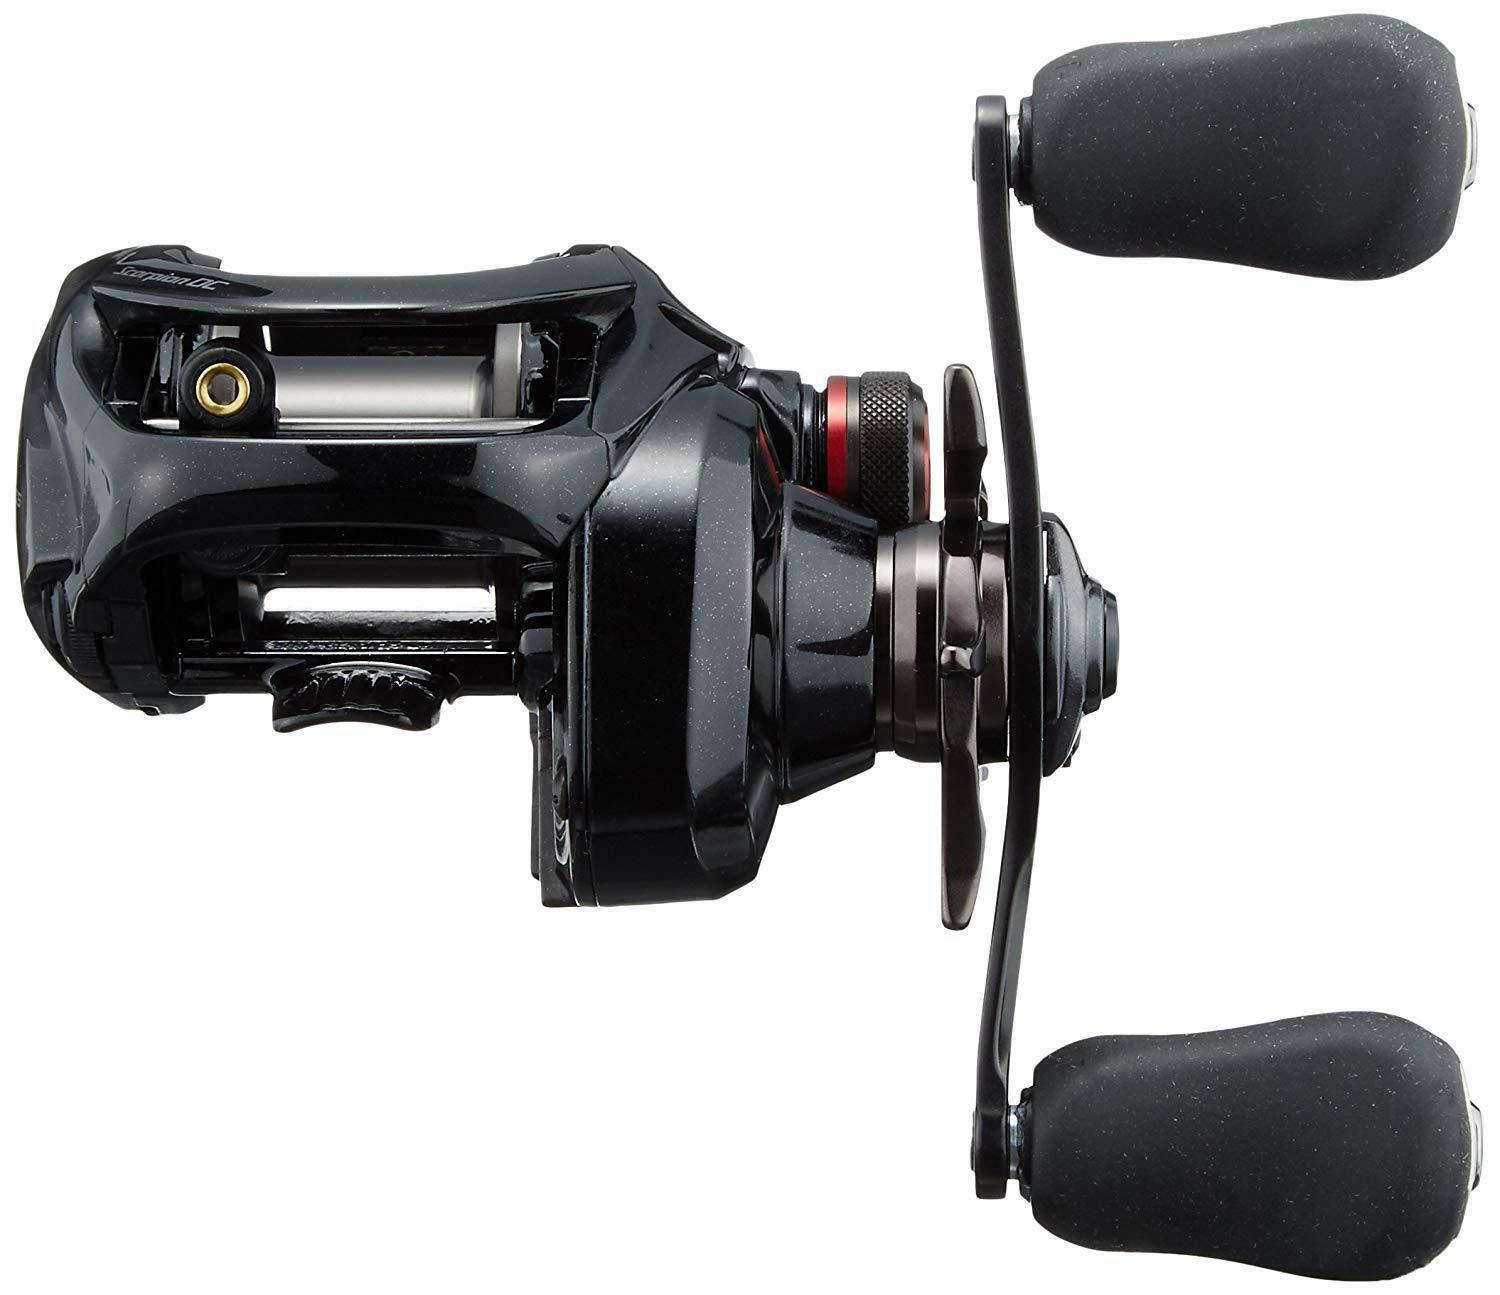 SHIMANO SHIMANO SHIMANO 17 Scorpion DC 101 LEFT Baitcasting Reel S A-RB X-SHIP New in Box 866438